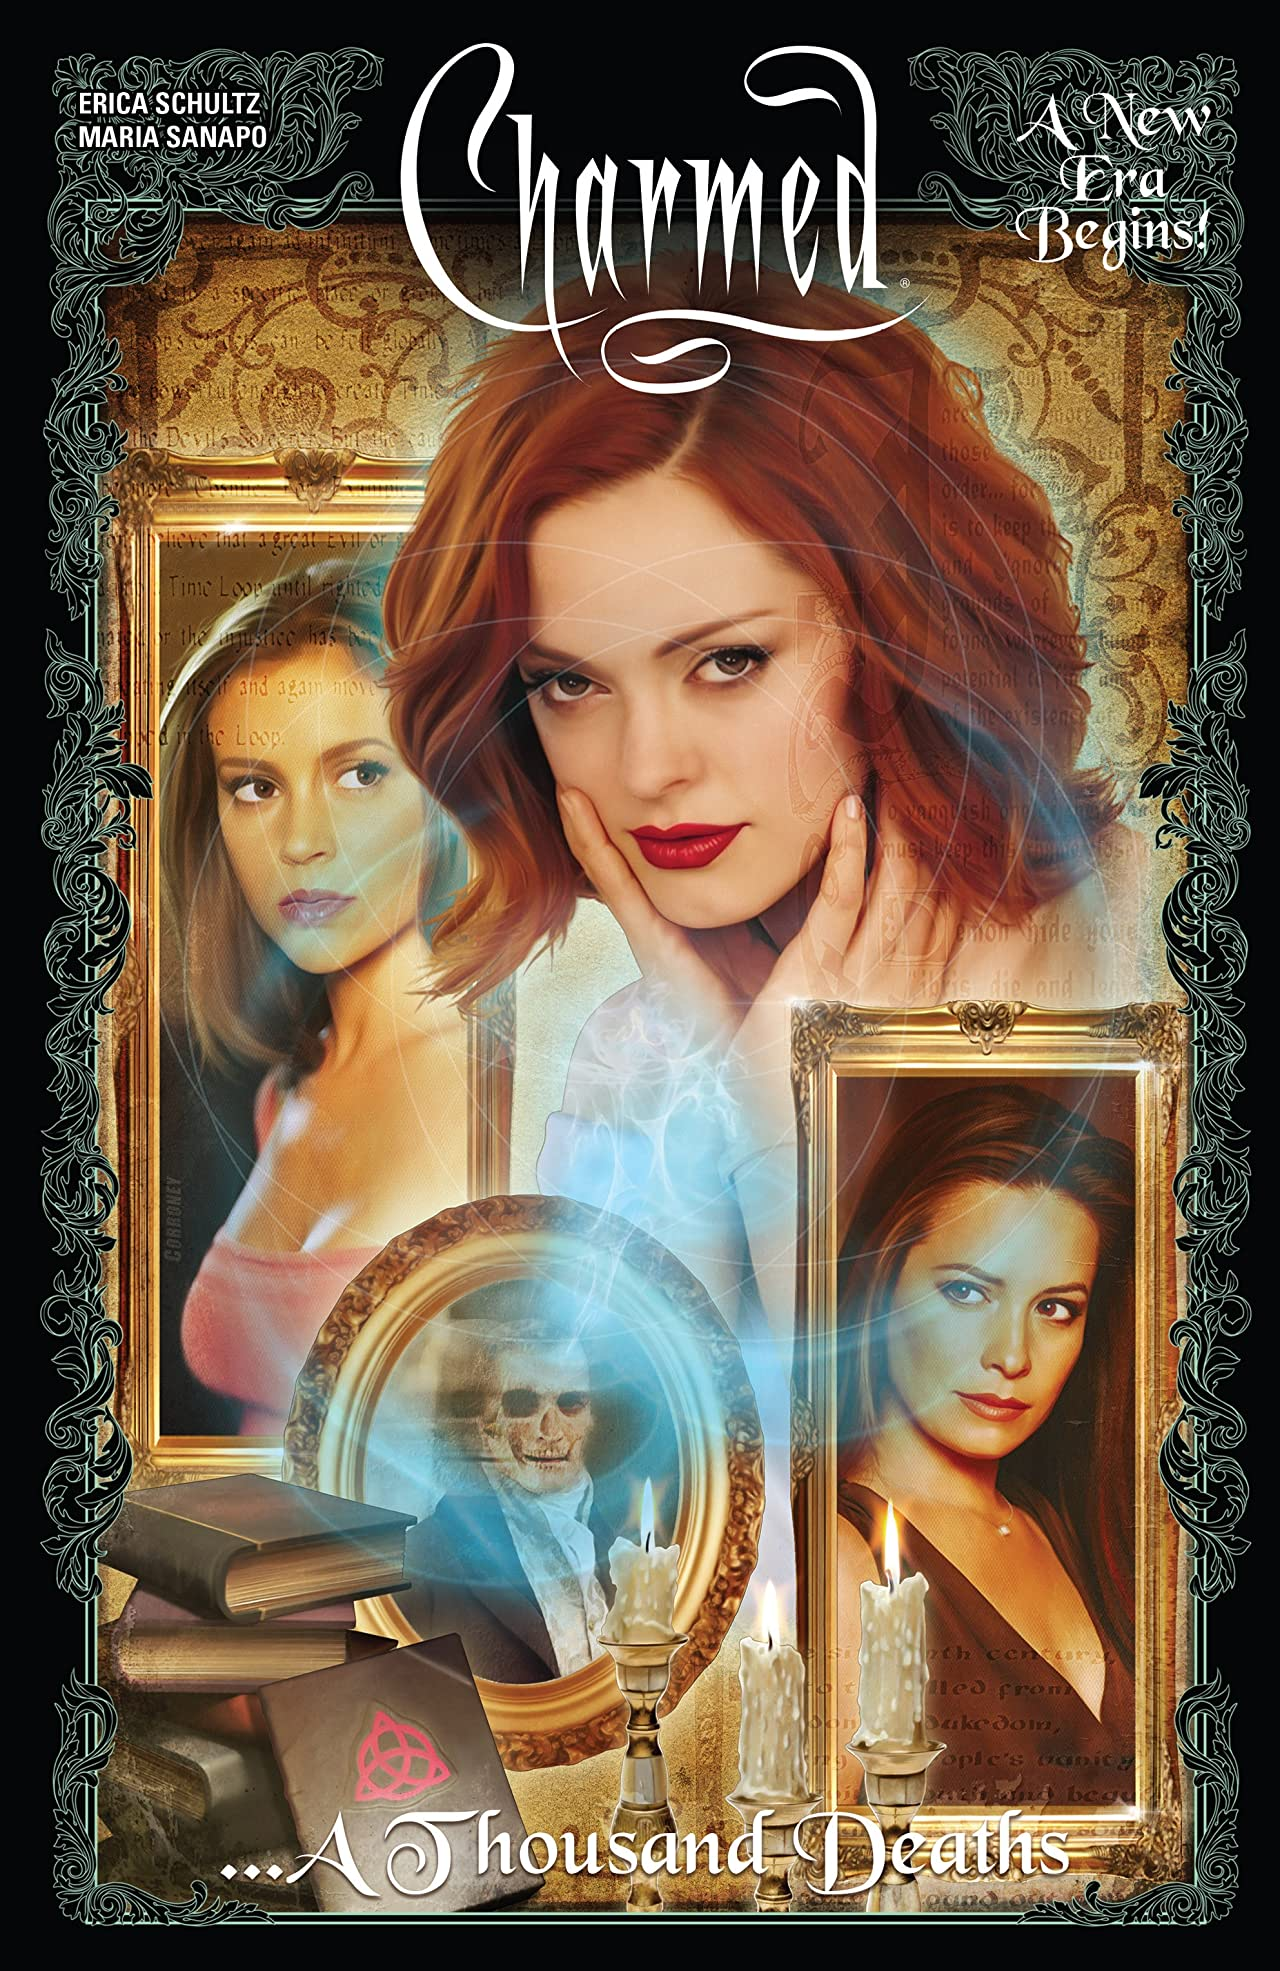 Charmed Vol. 1: …A Thousand Deaths